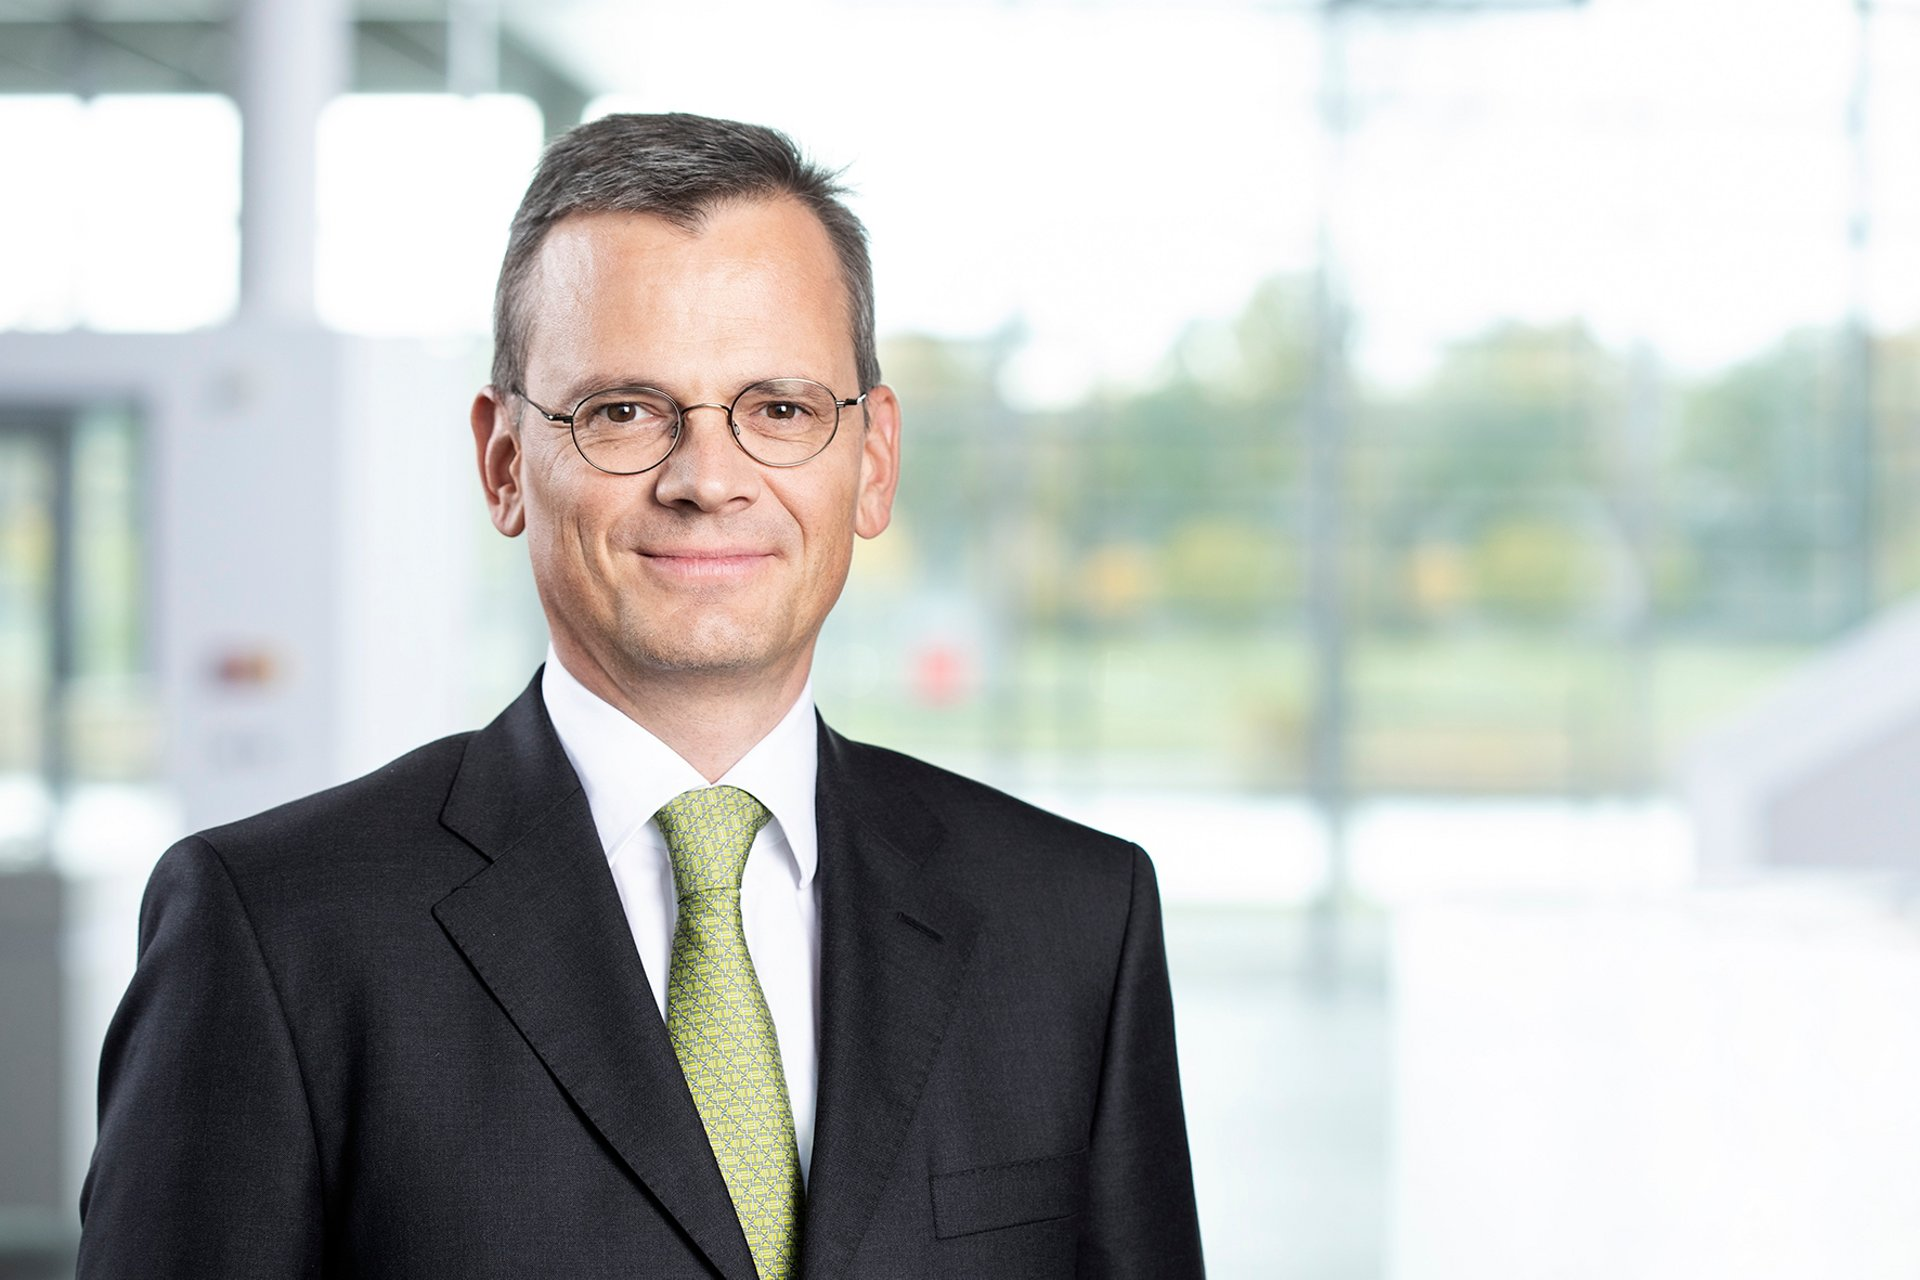 Dominik Asam - New Airbus Chief Financial Officer (CFO).